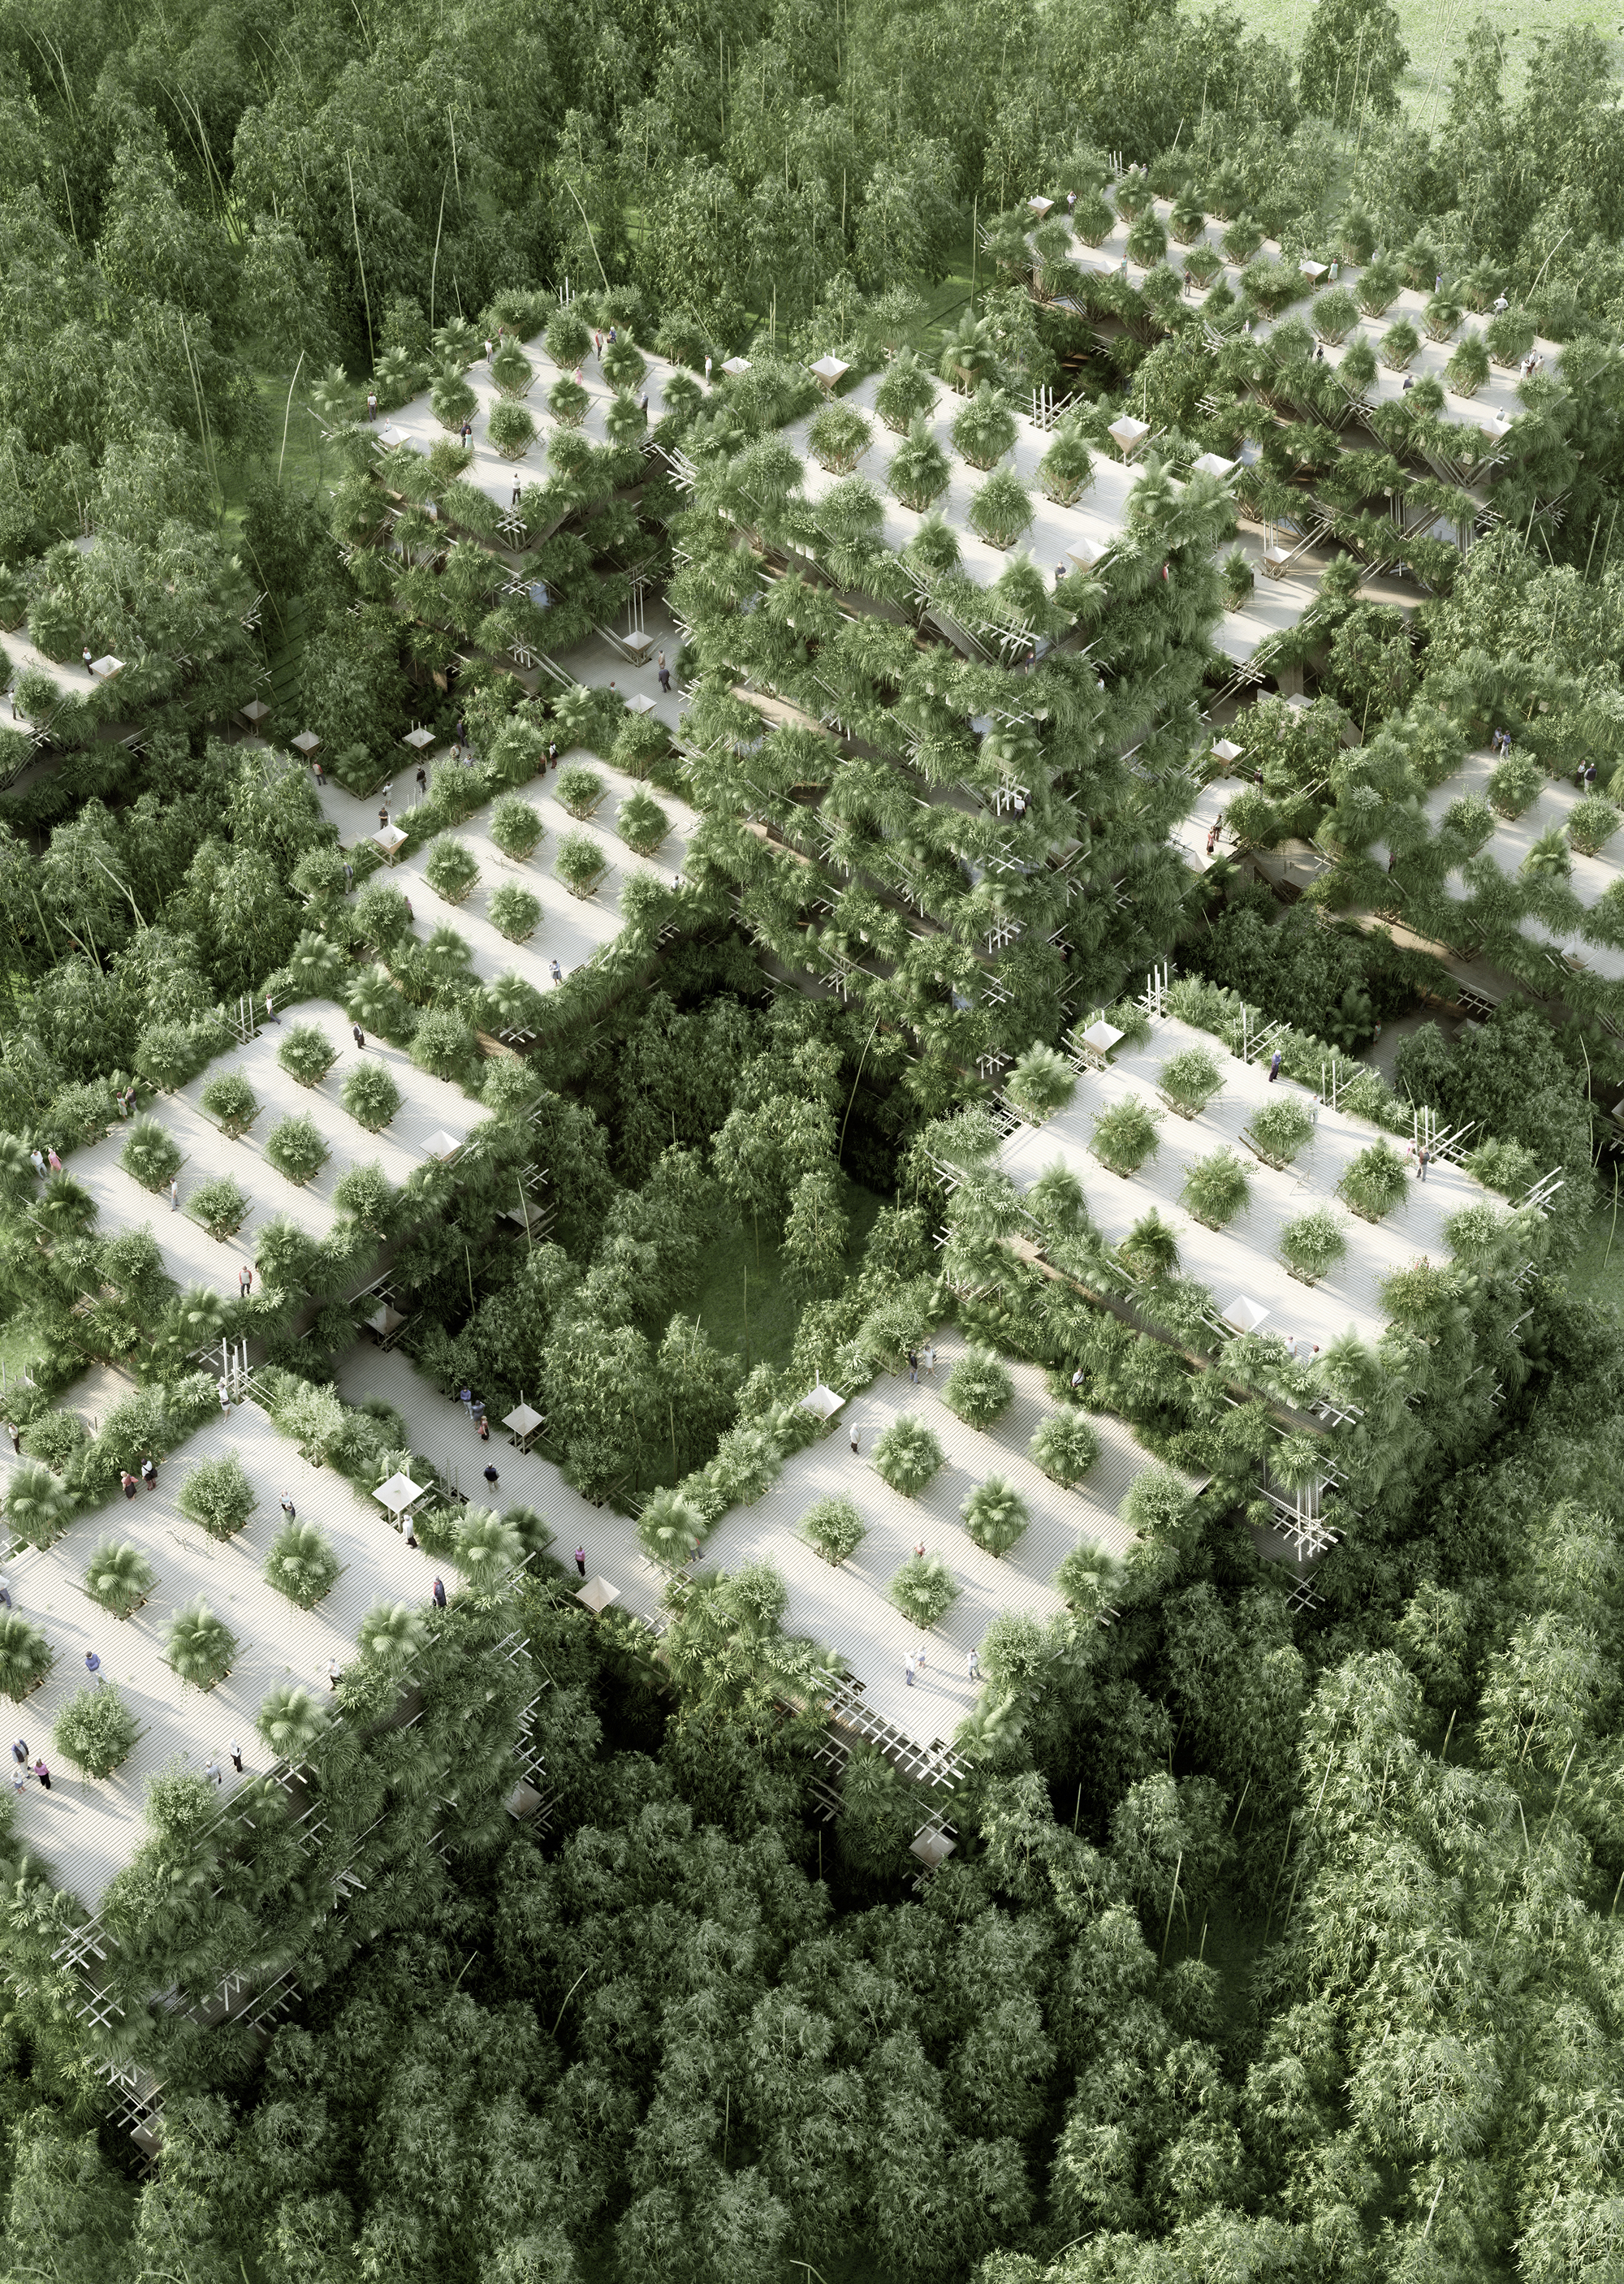 Rendering of PENDA's vision of a bamboo city.